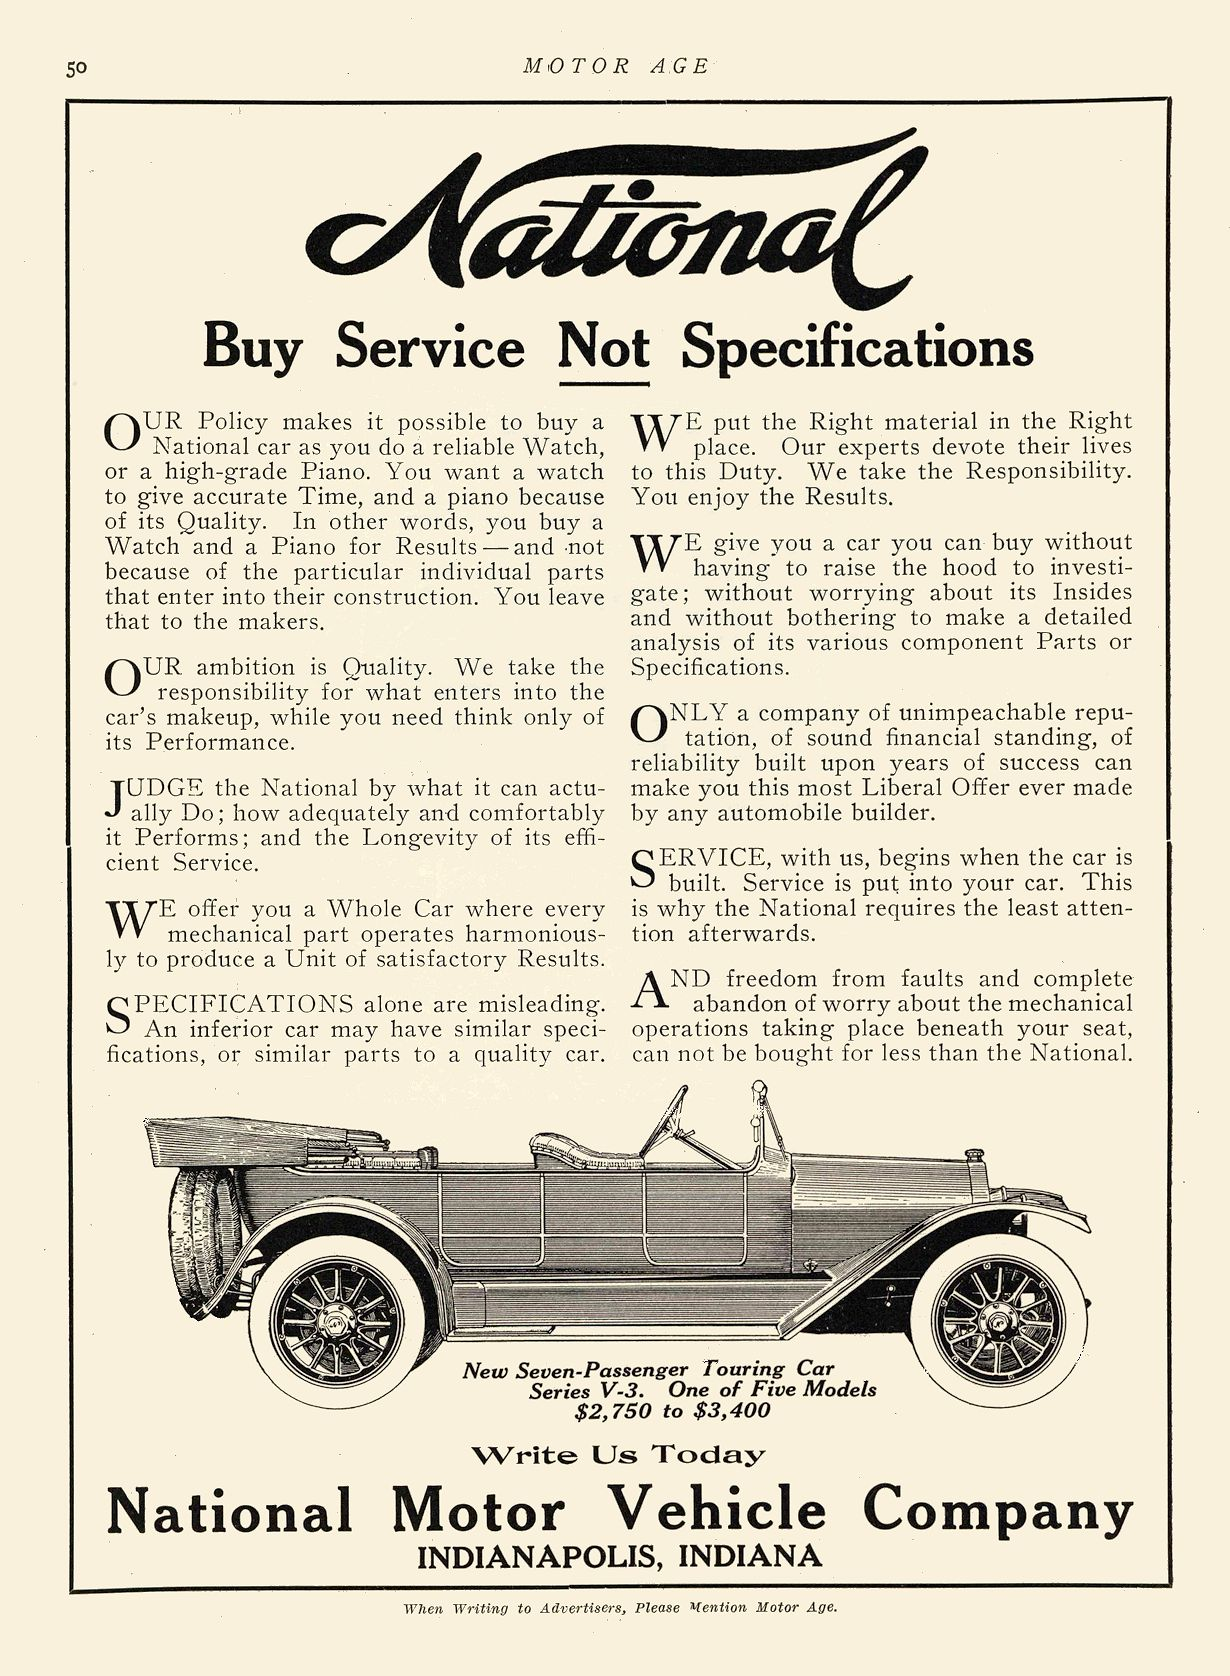 1912 7 ca. NATIONAL Buy Service Not Specifications National Motor Vehicle Company Indianapolis, IND MOTOR AGE ca. July 1912 8.5″x12″ page 50